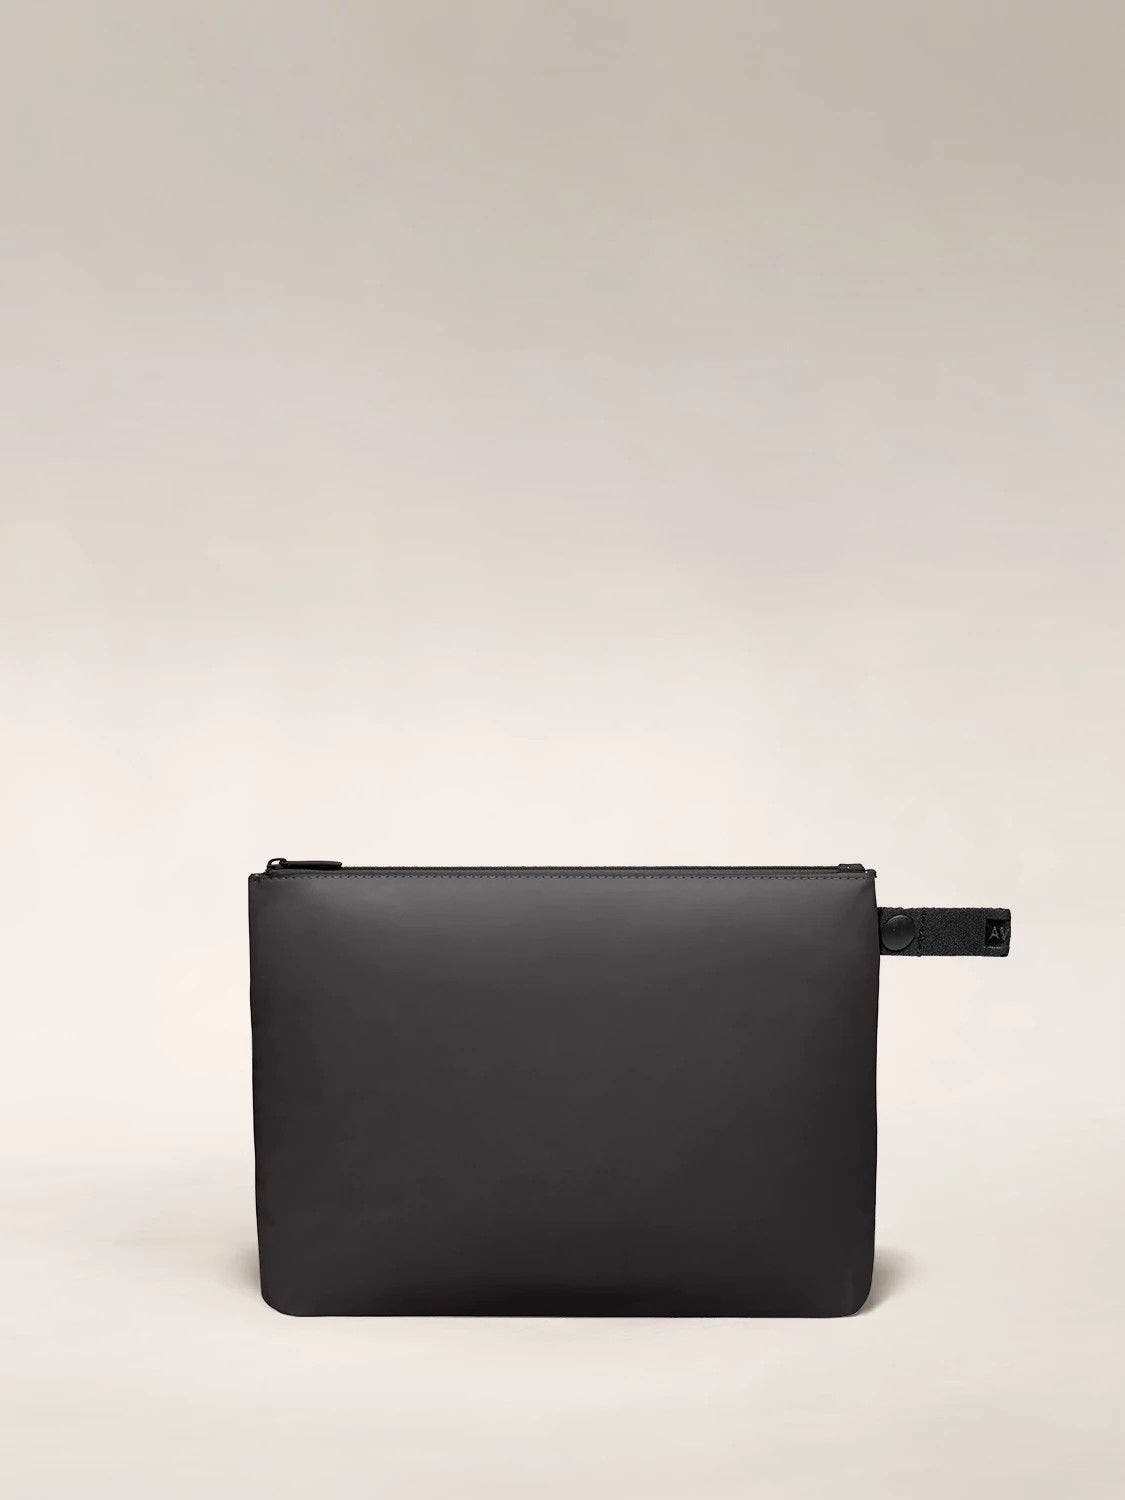 Front view of the Away large organizational travel pouch in the color black